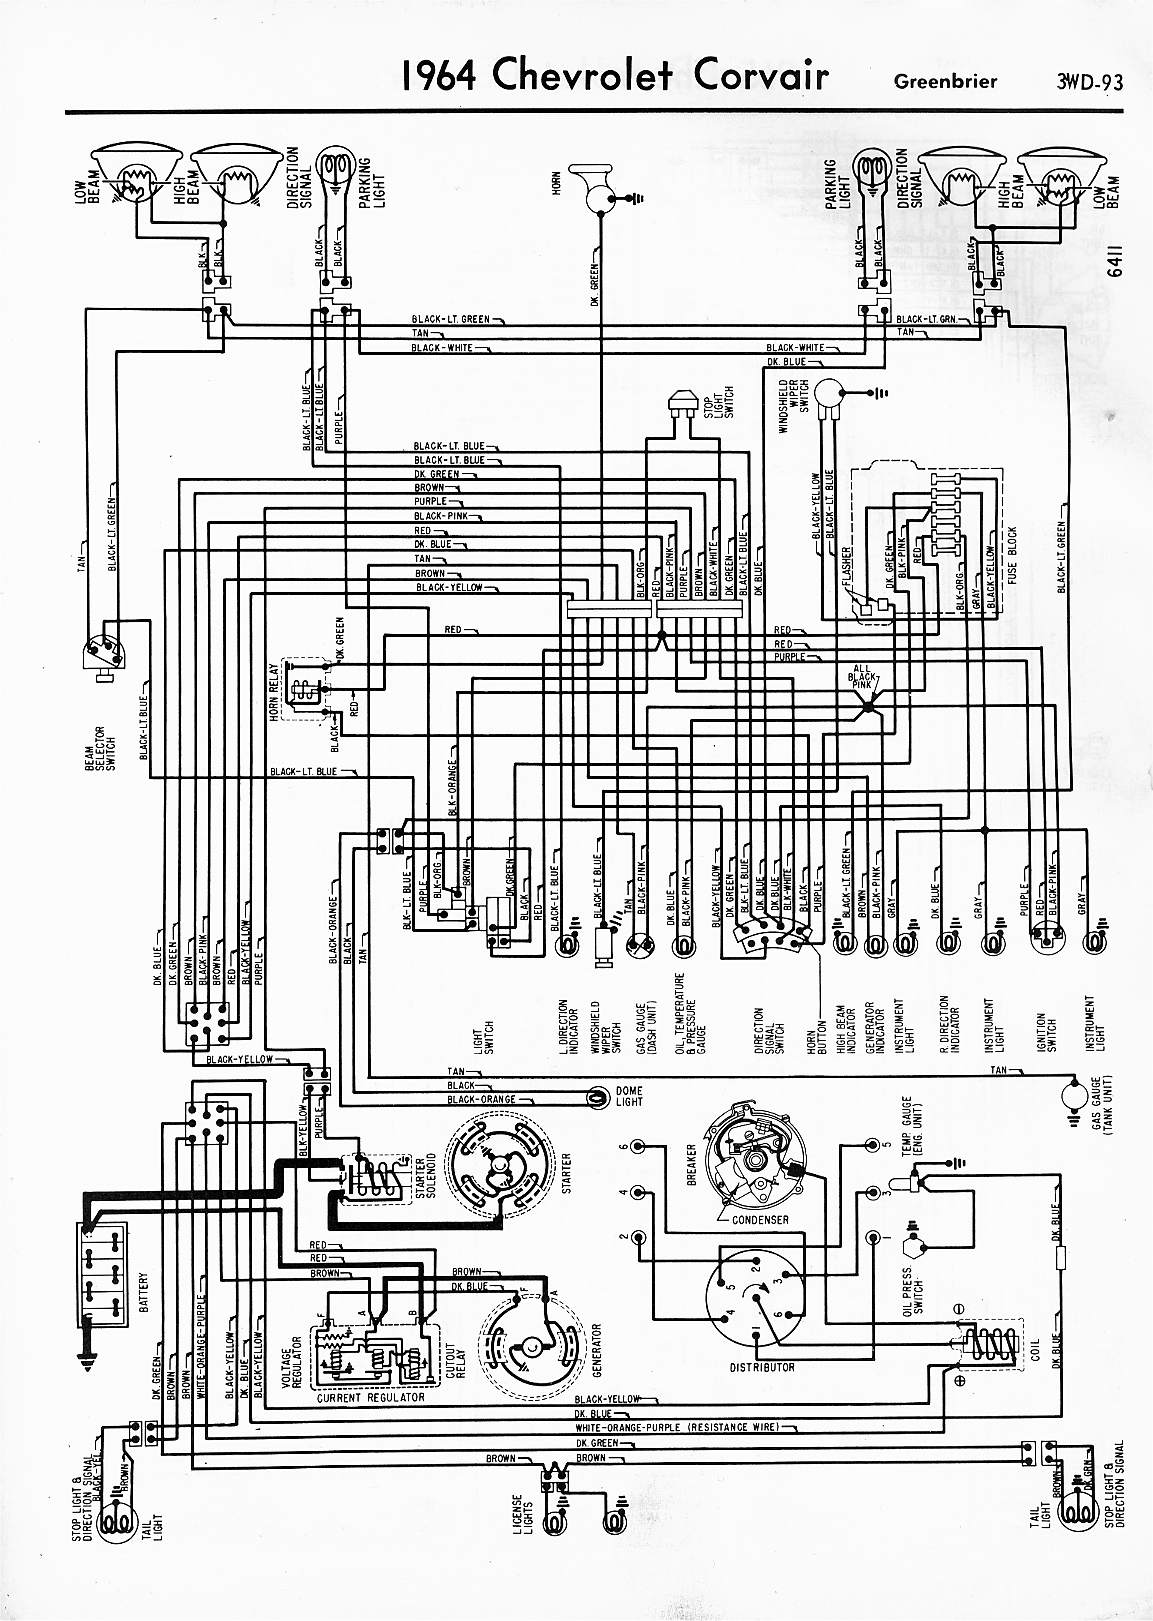 MWireChev64_3WD 093 57 65 chevy wiring diagrams 1964 corvair wiring diagram at love-stories.co